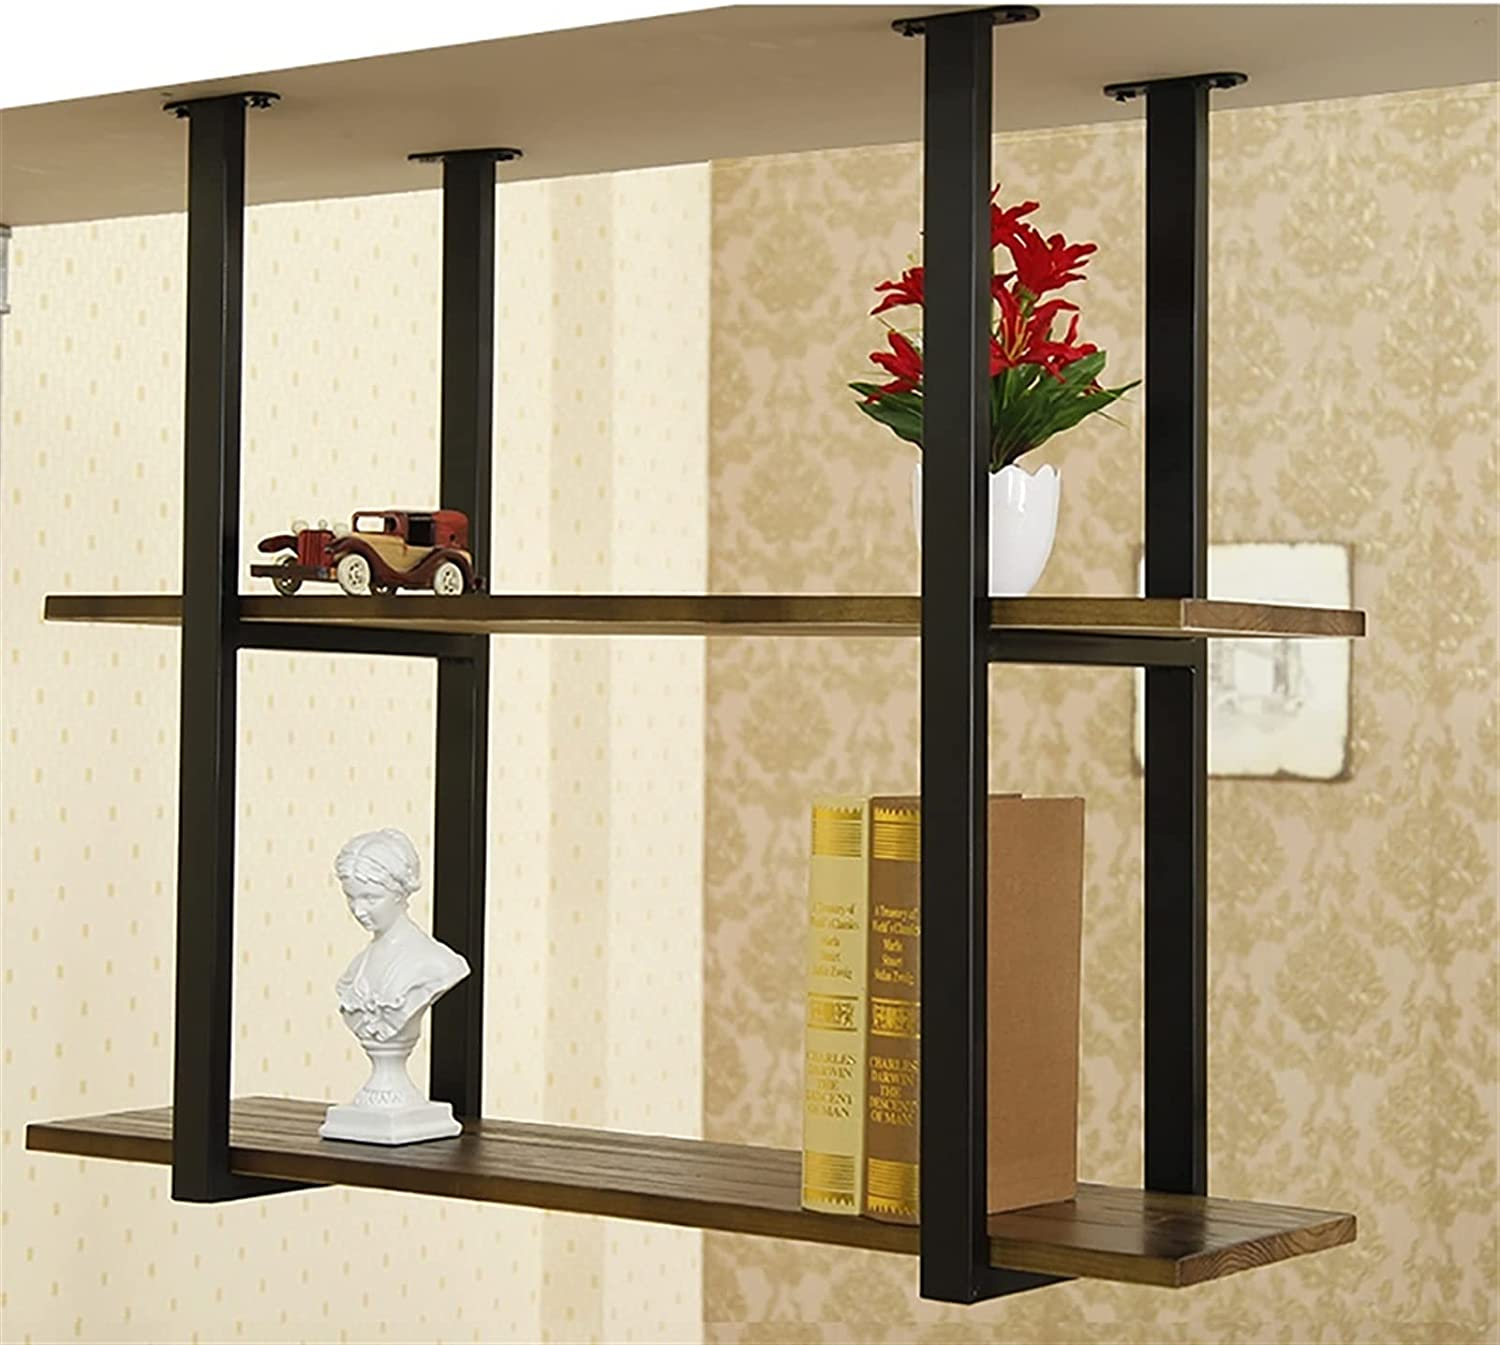 JHJIUJ Ceiling Wine Rack Suspension Shelves for LOF Storage Wall Super beauty product Max 75% OFF restock quality top